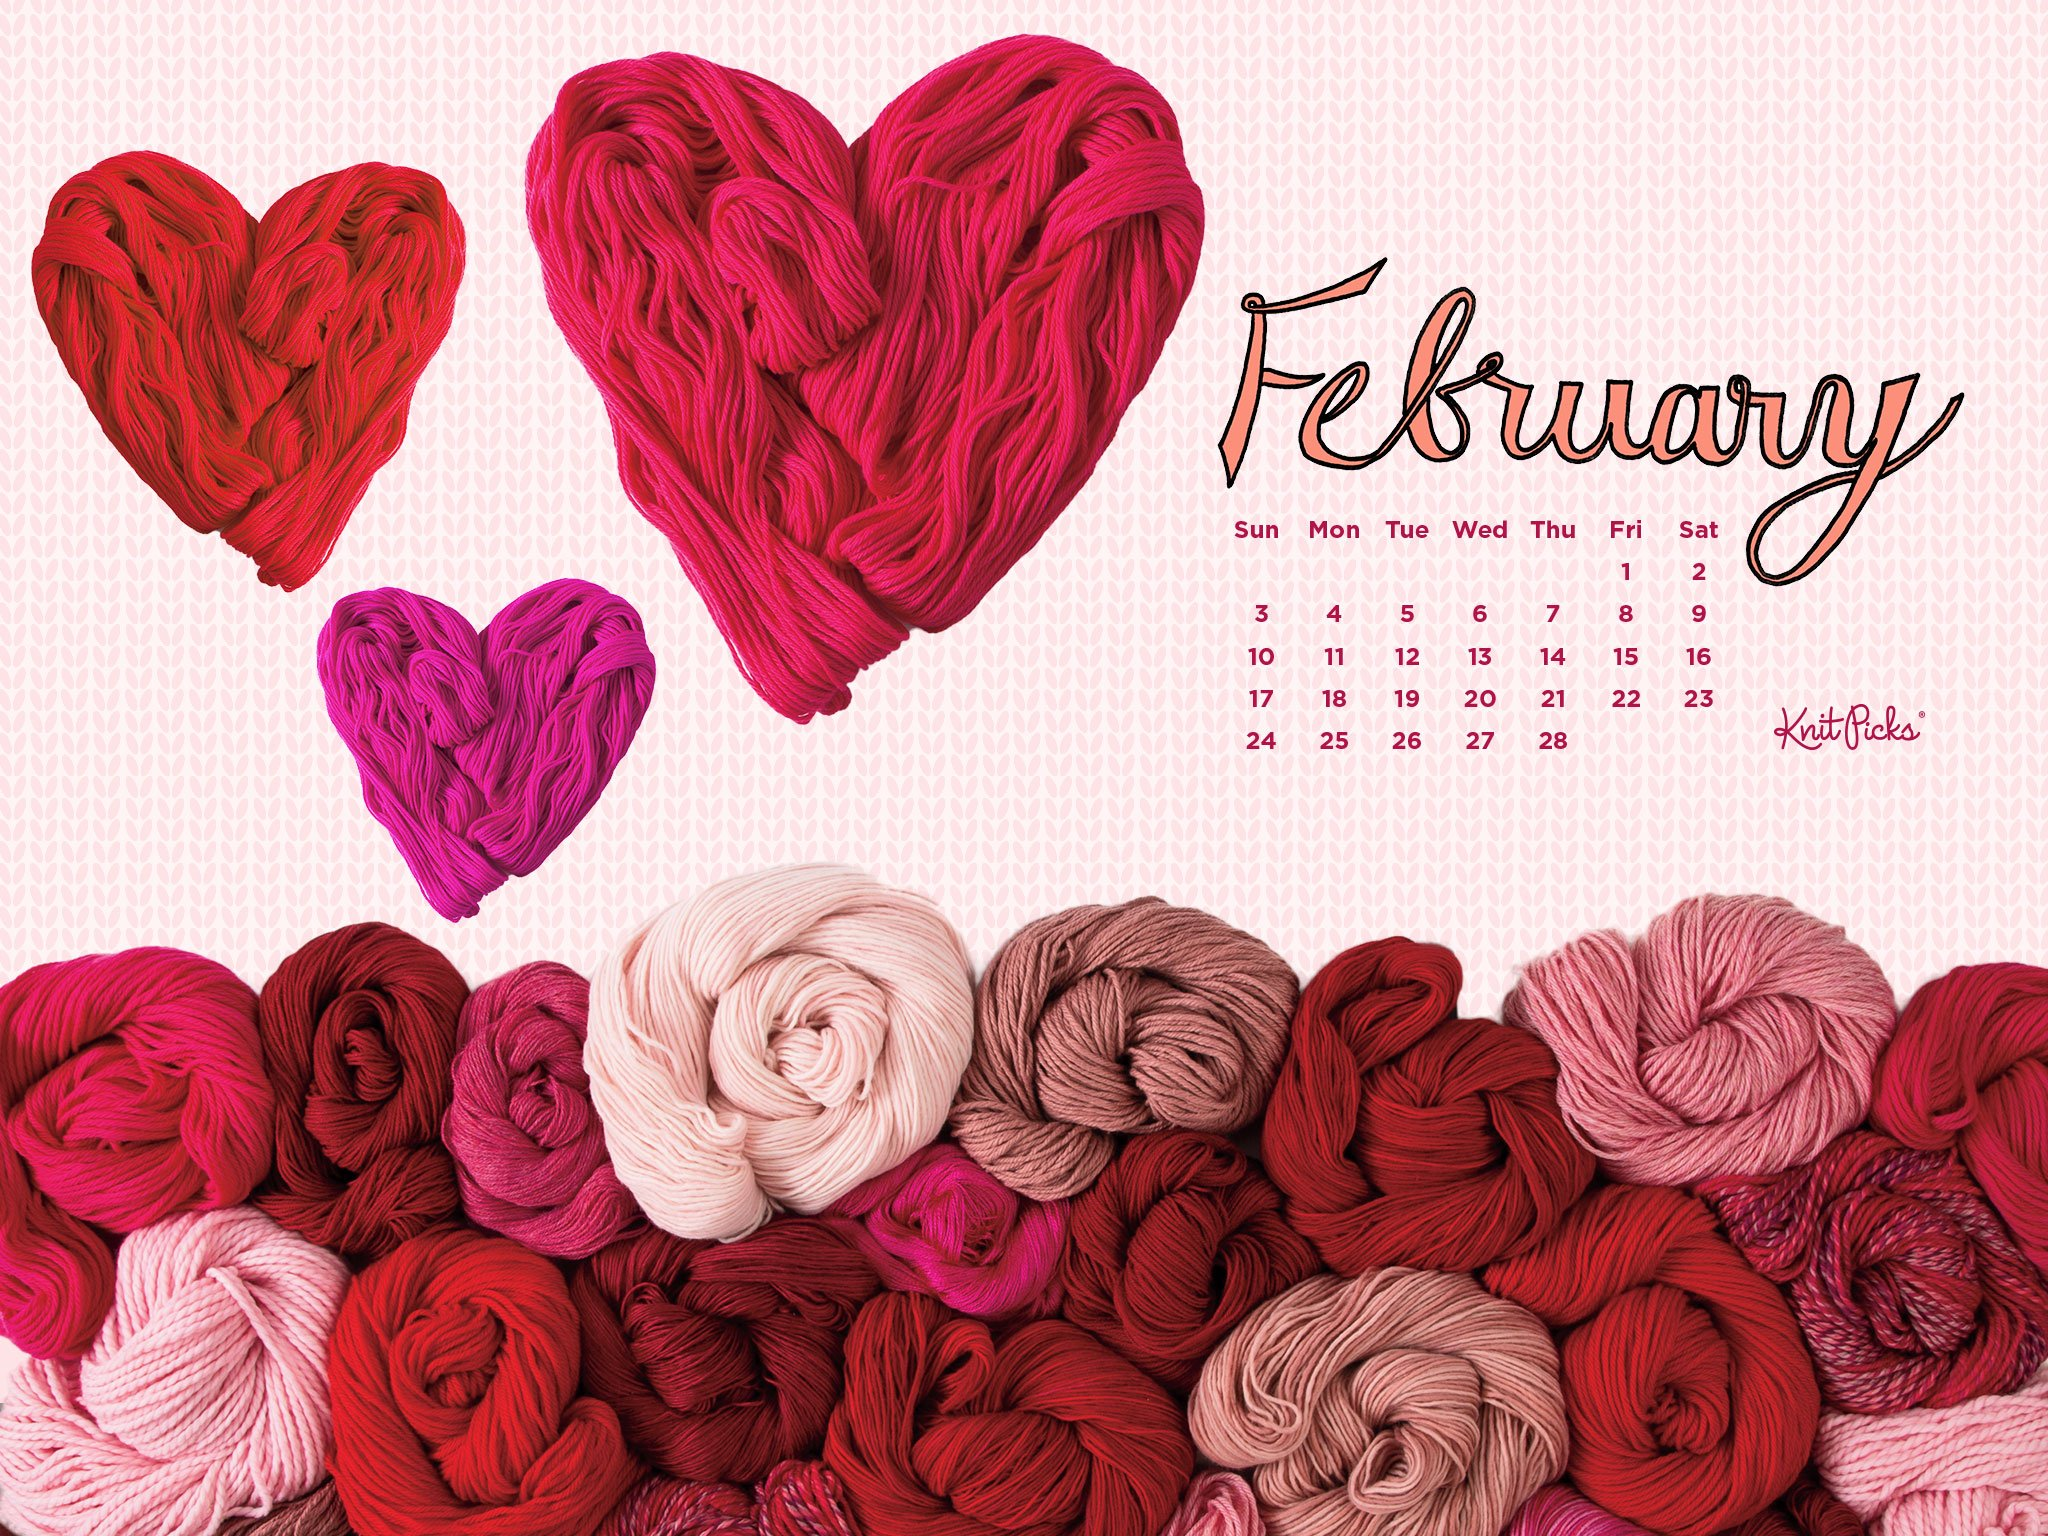 Downloadable February 2019 Calendar   KnitPicks Staff 2048x1536